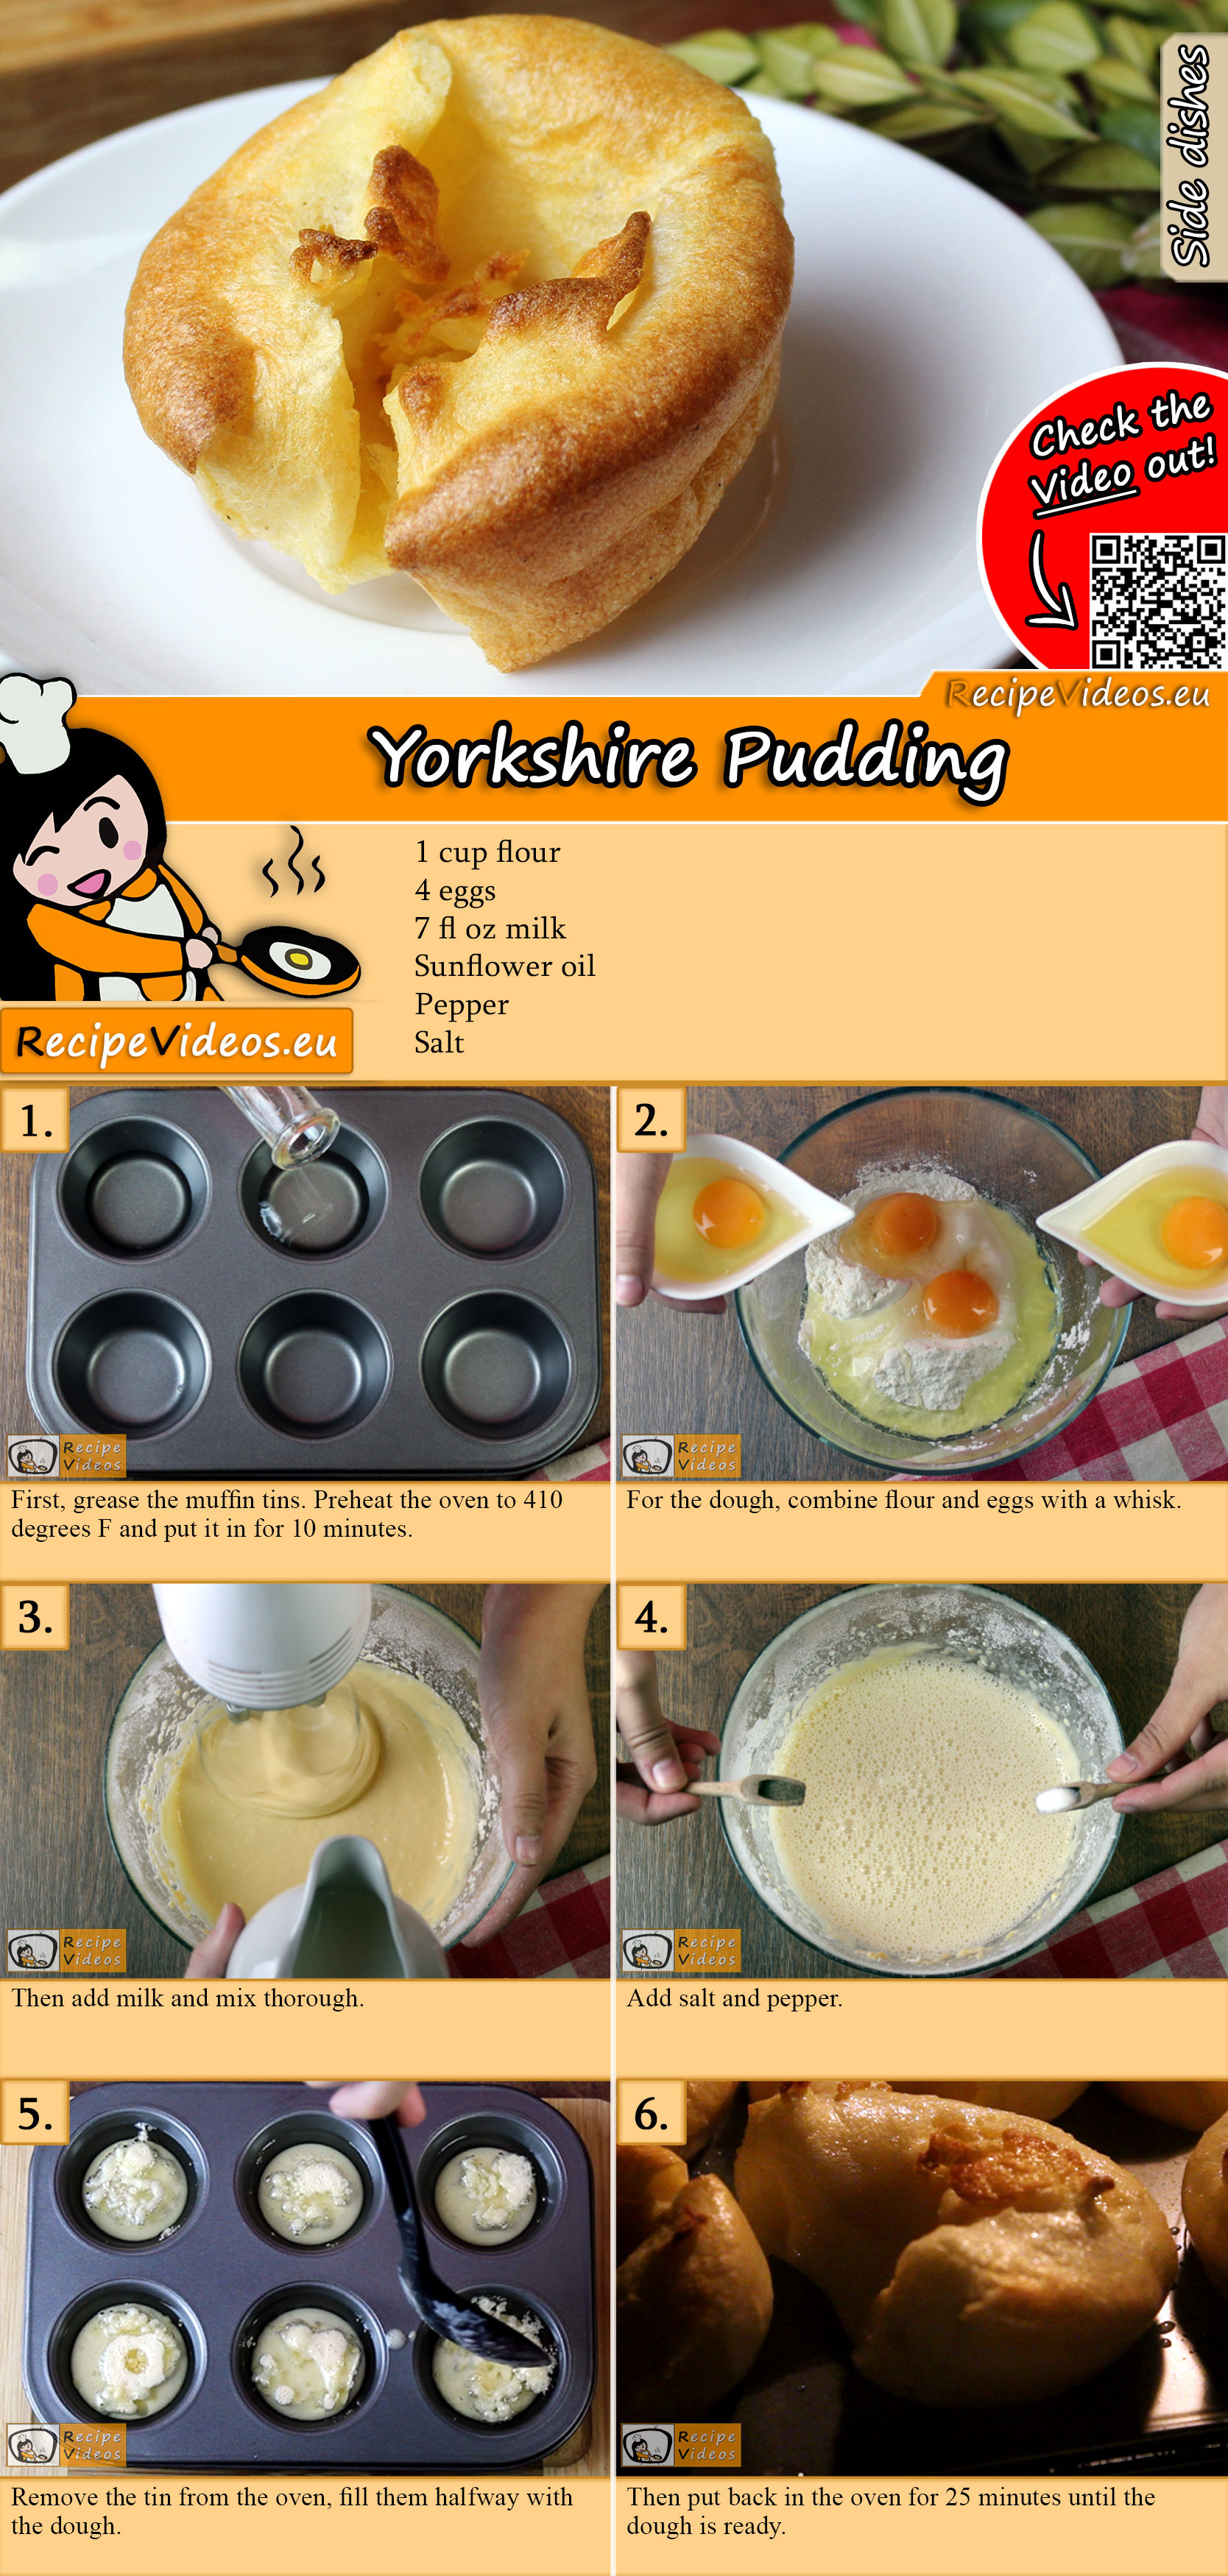 Yorkshire Pudding recipe with video